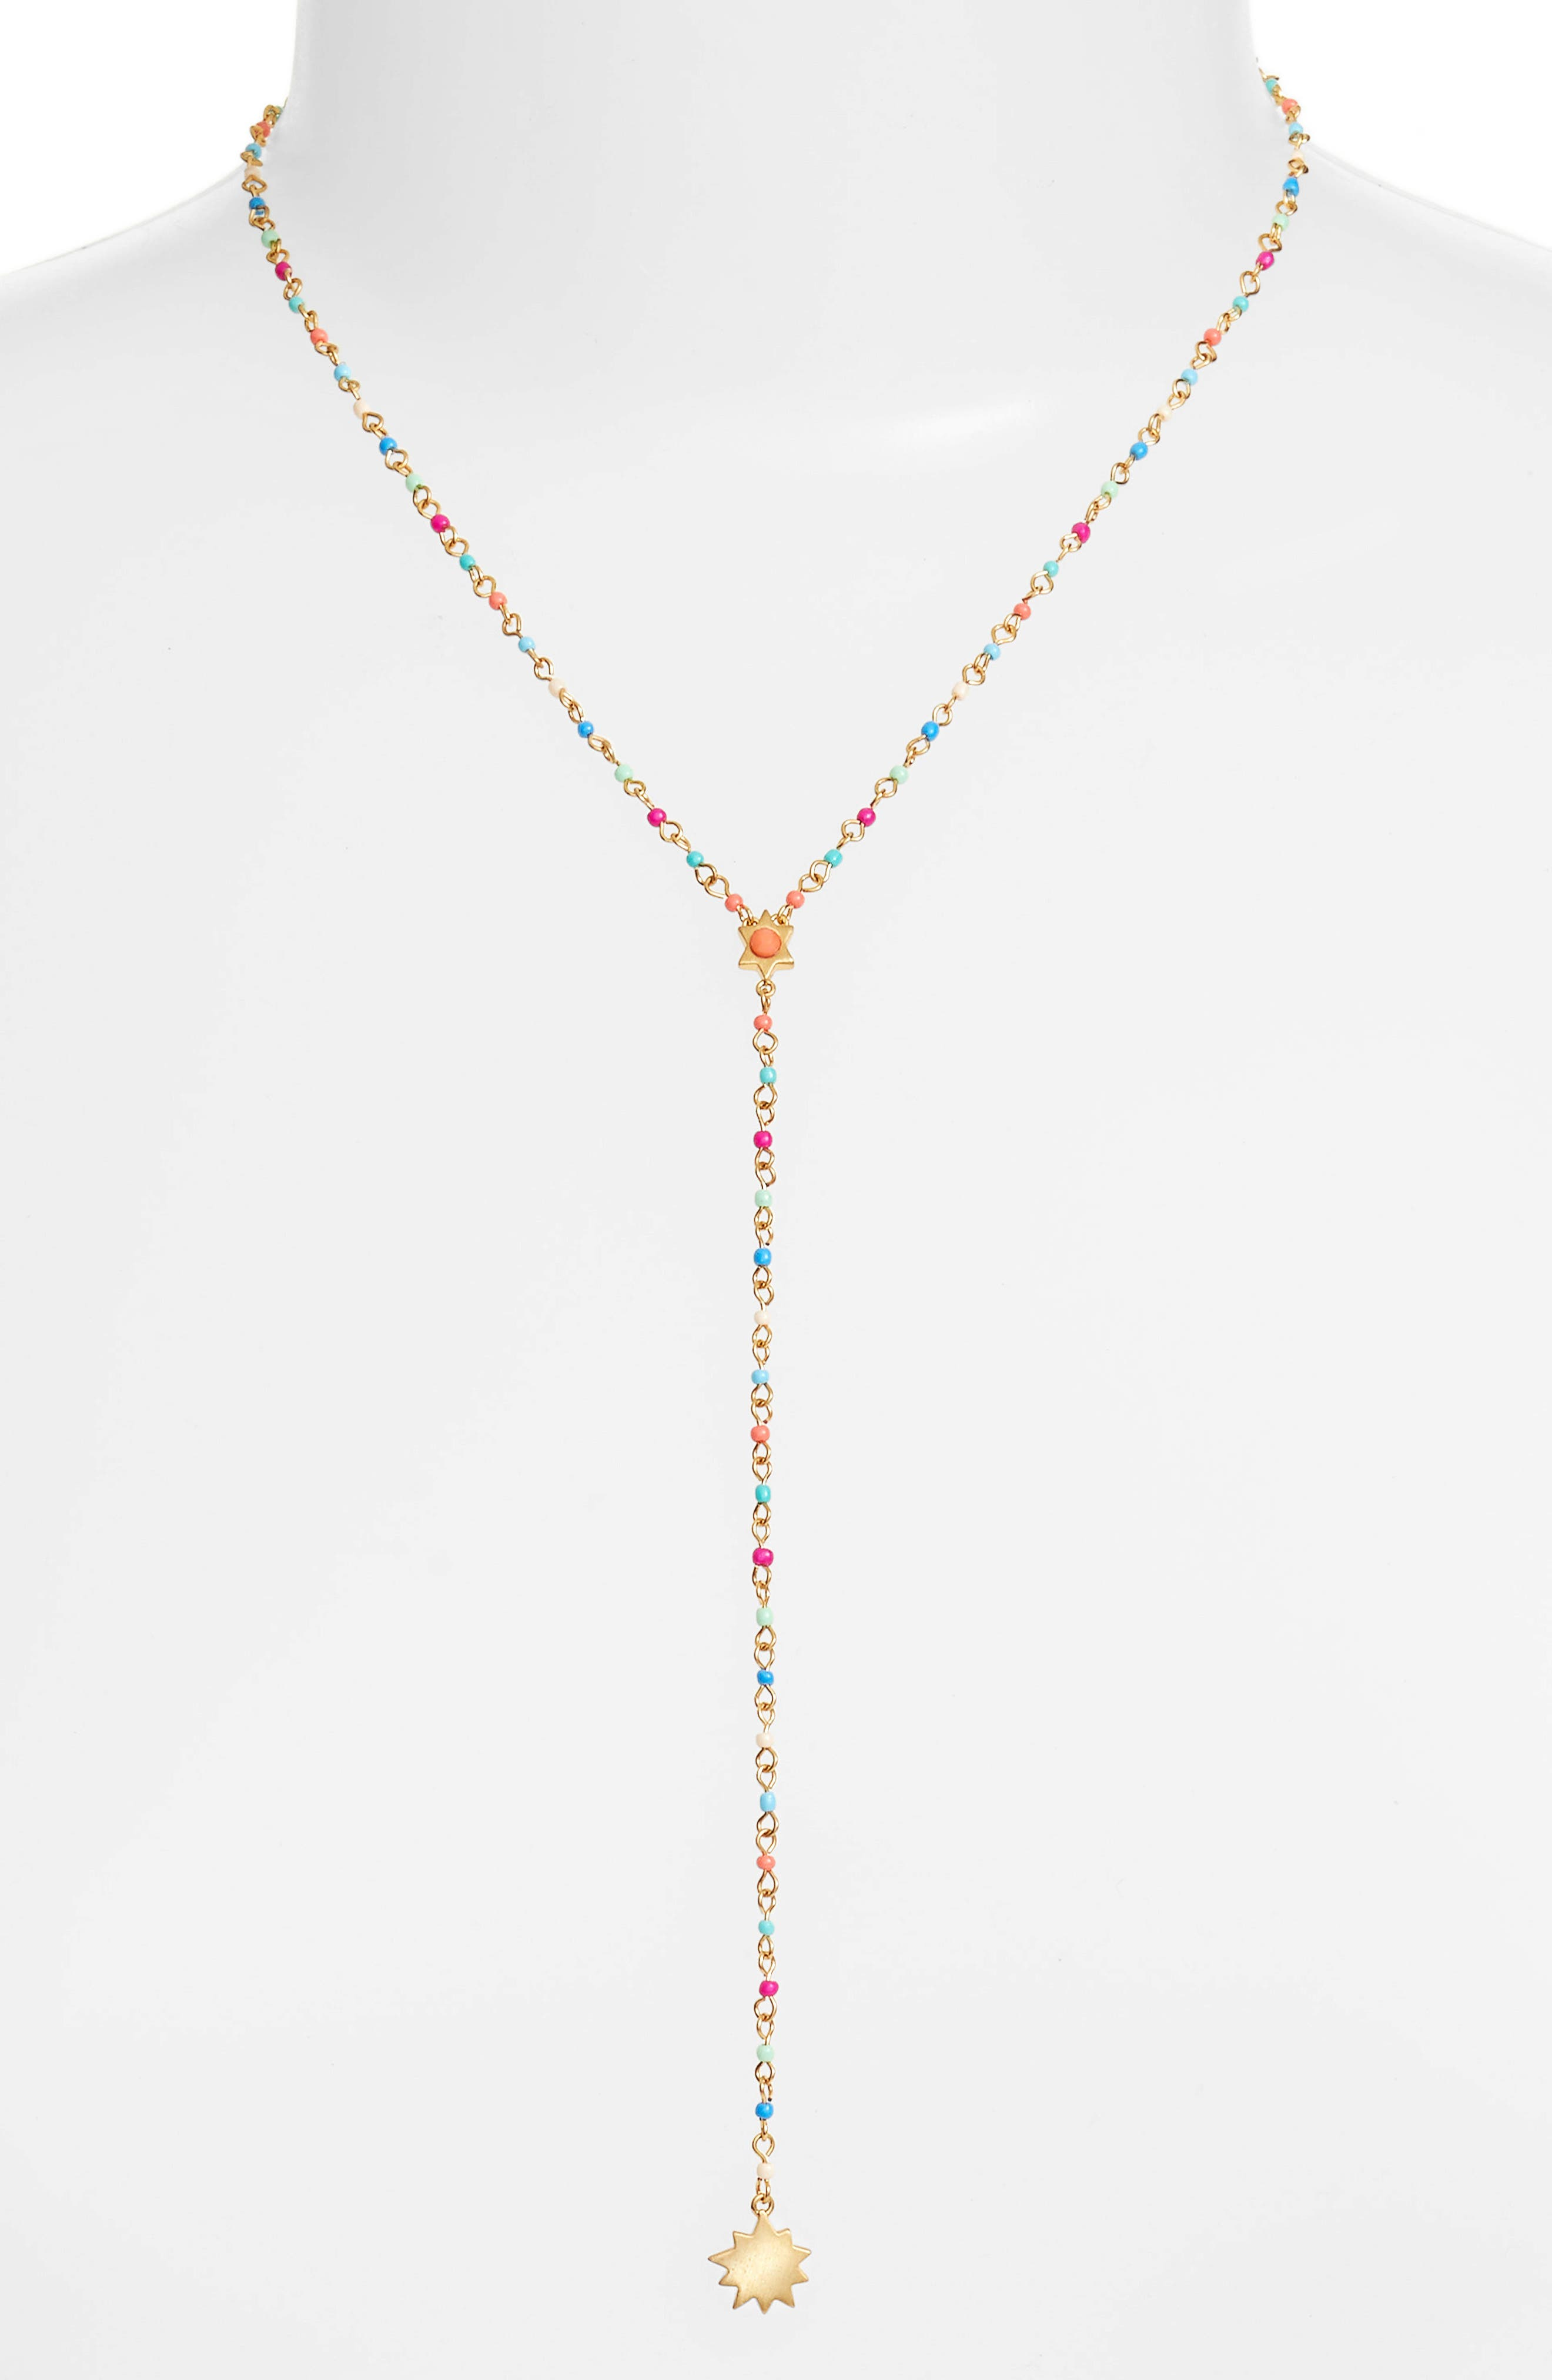 Sole Beaded Y-Necklace,                             Main thumbnail 1, color,                             Bright Multi/ Gold